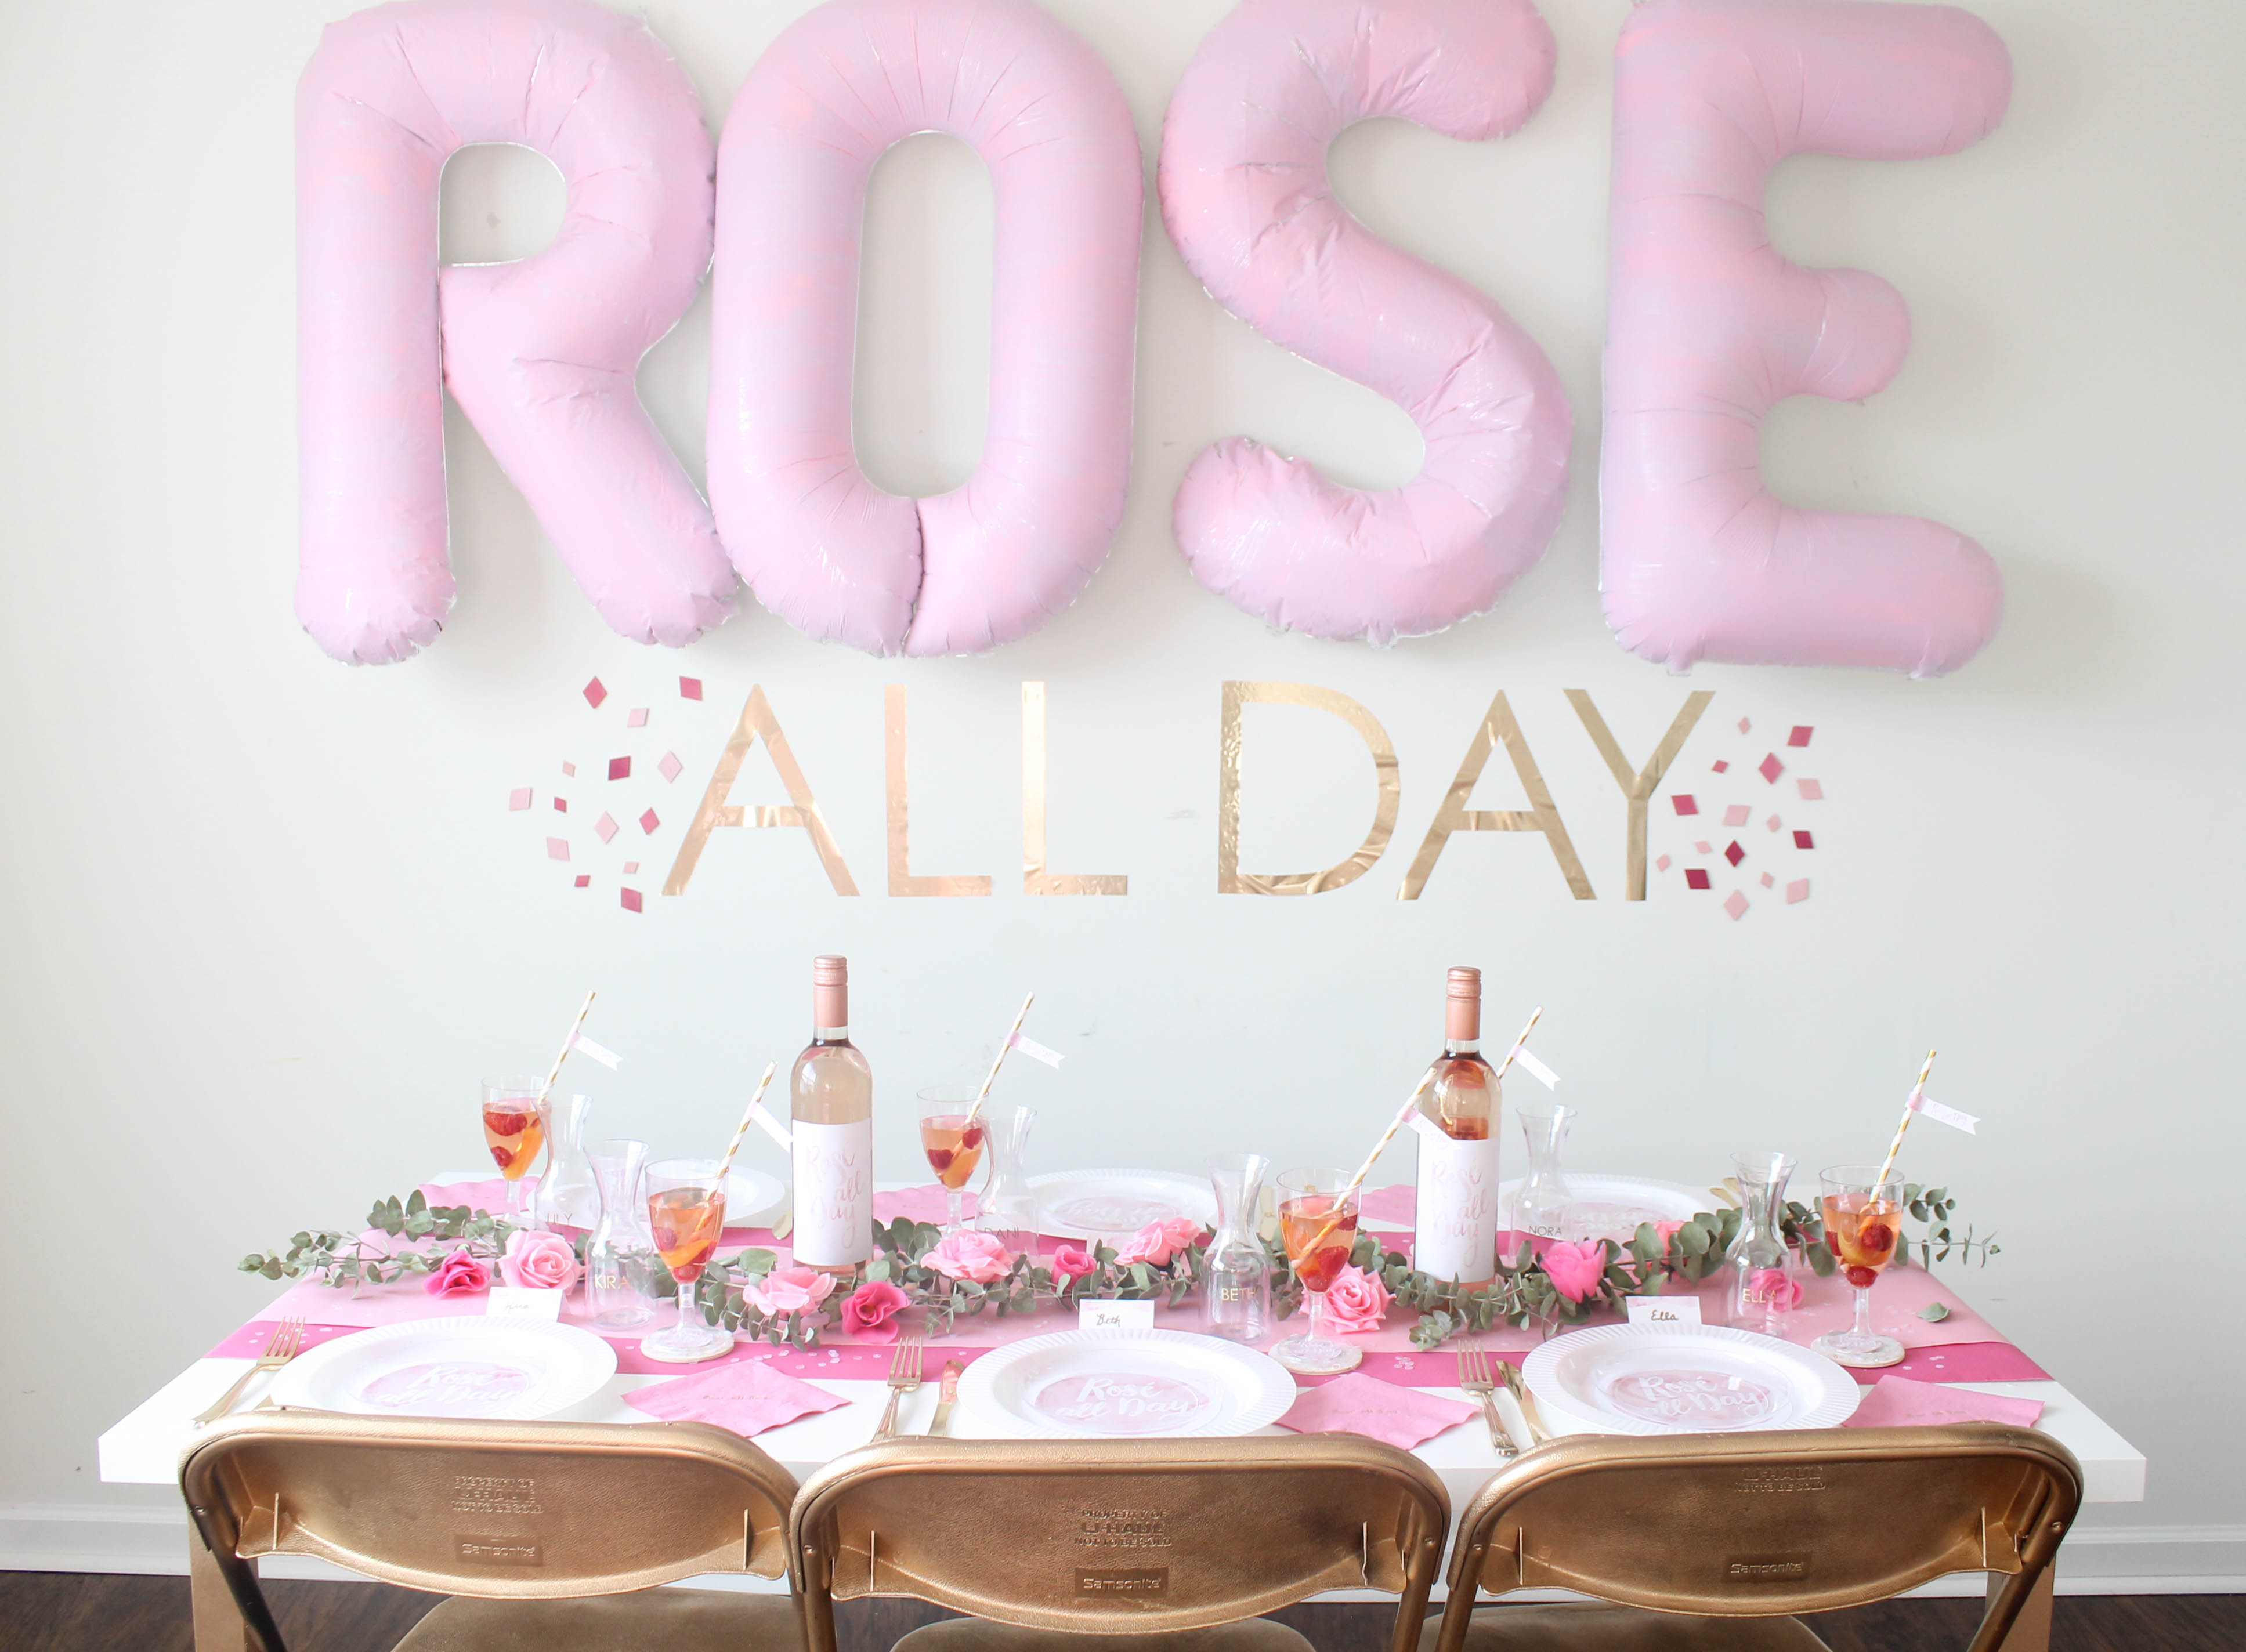 Bridal Shower Ideas | Sweetly Chic Events & Design